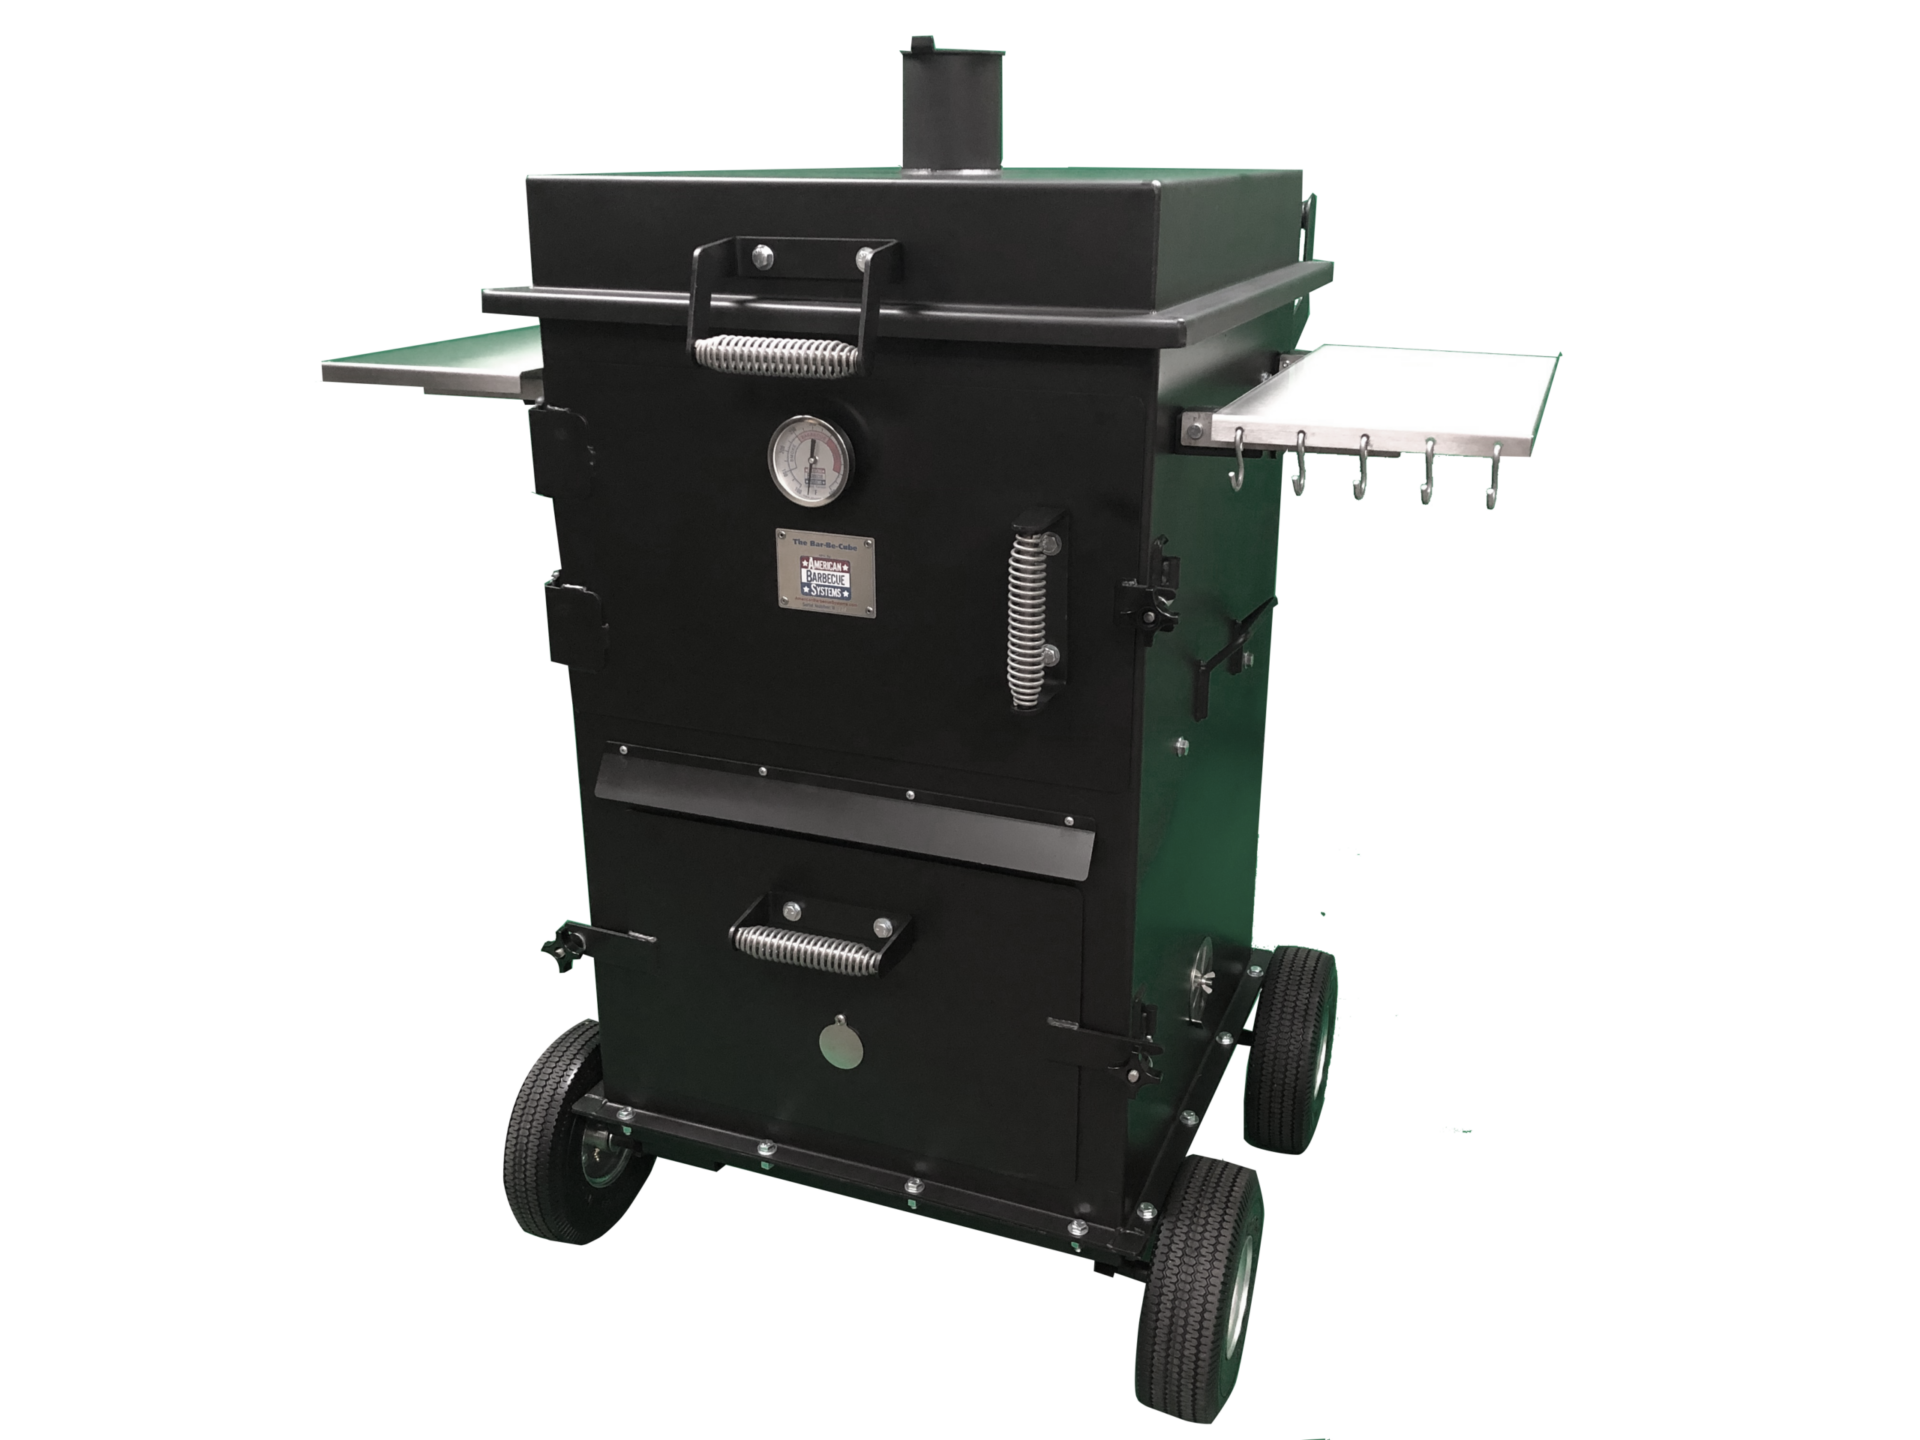 The American Barbeque Systems Bar-Be-Cube Smoker/Grill